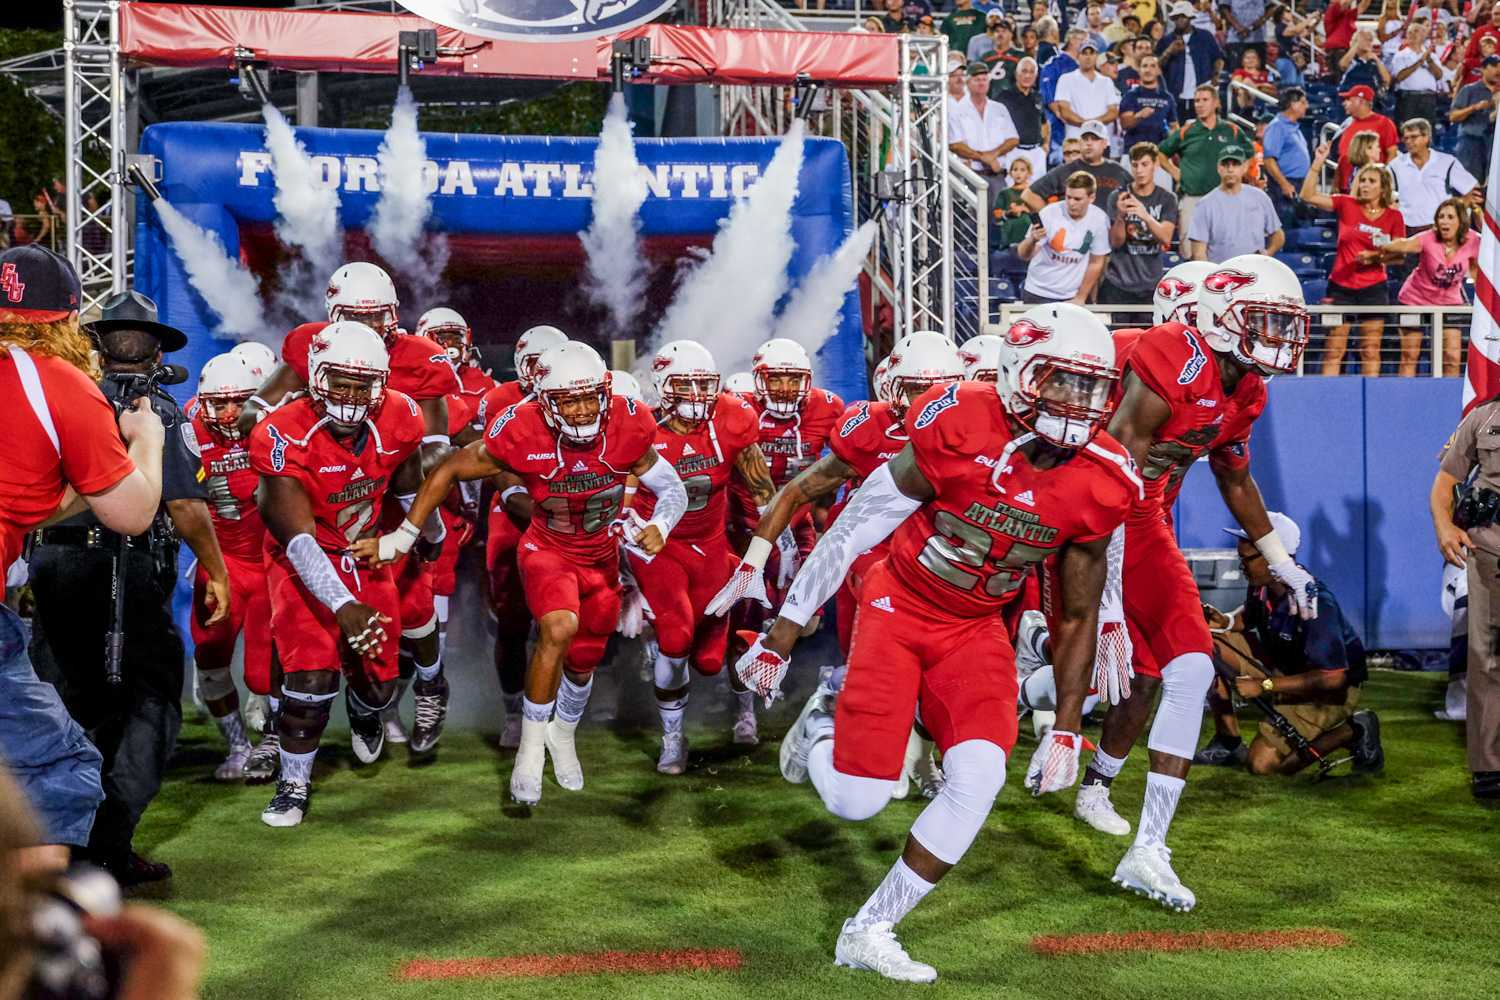 The Owls come out of the tunnel before Friday's game to face the University of Miami on September 11th, 2015. The final score was 44-20 in favor of the Hurricanes. Mohammed F Emran | Staff Photographer